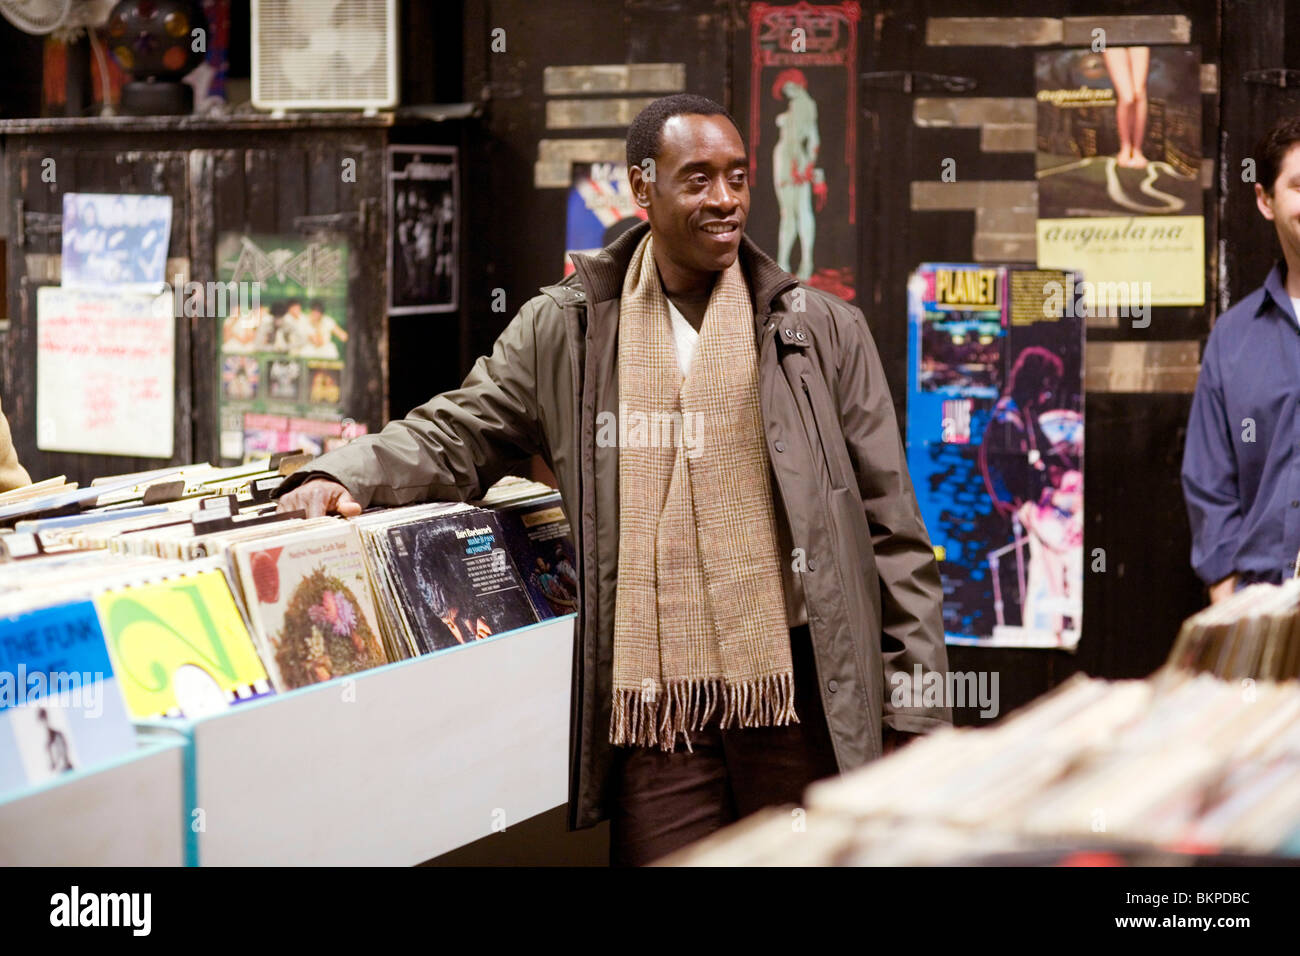 REIGN OVER ME (2007) DON CHEADLE REOM 001-02 - Stock Image